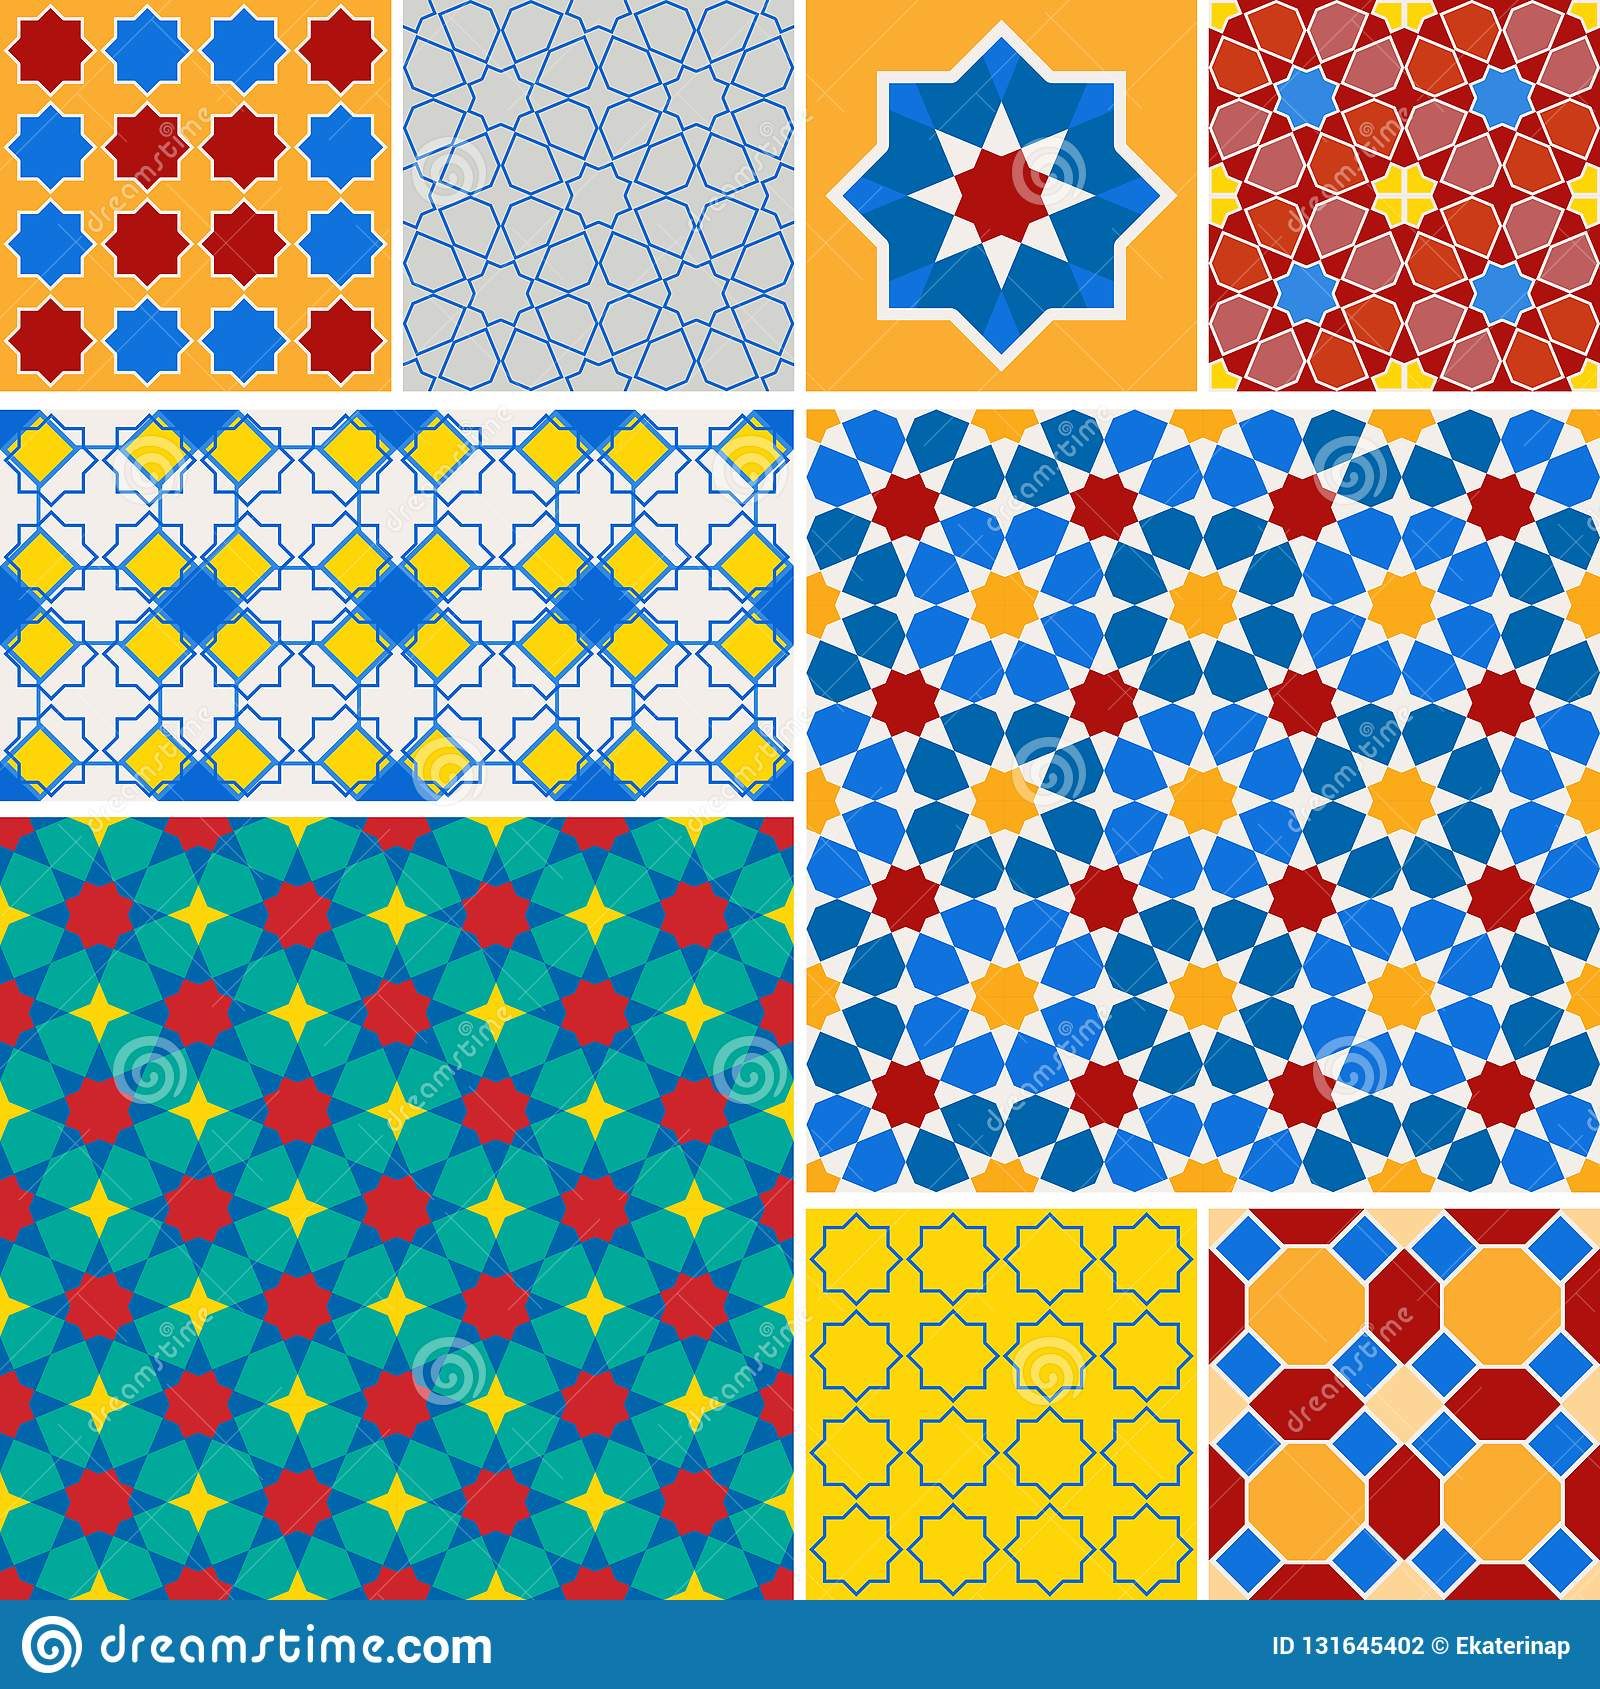 Moroccan collection seamless pattern, Morocco. Patchwork mosaic traditional folk geometric ornament blue red green orange yellow.